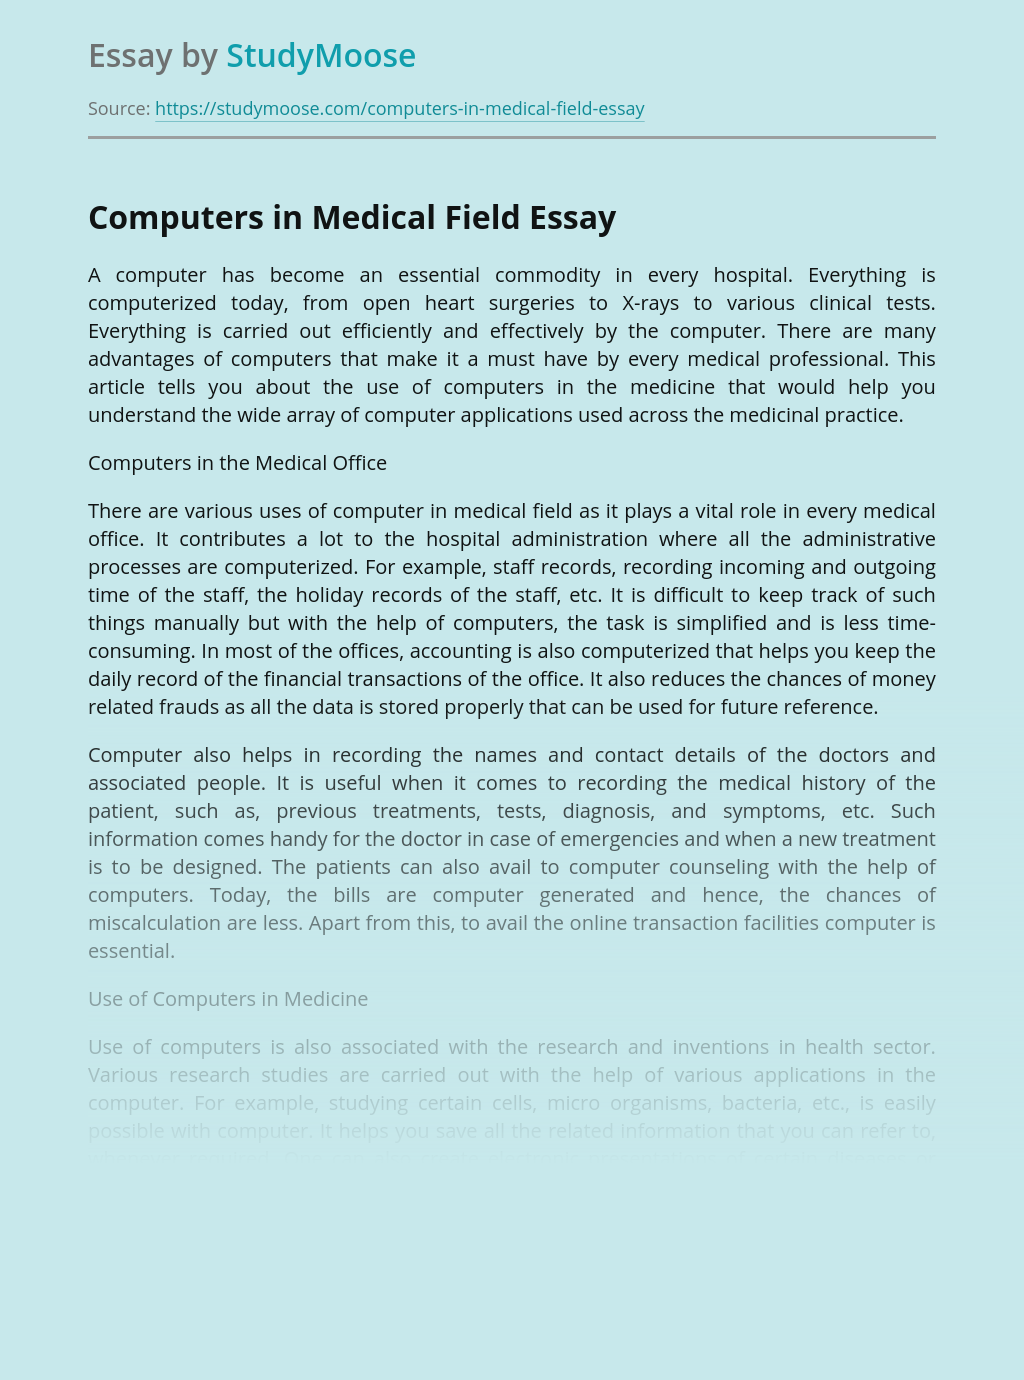 Computers in Medical Field